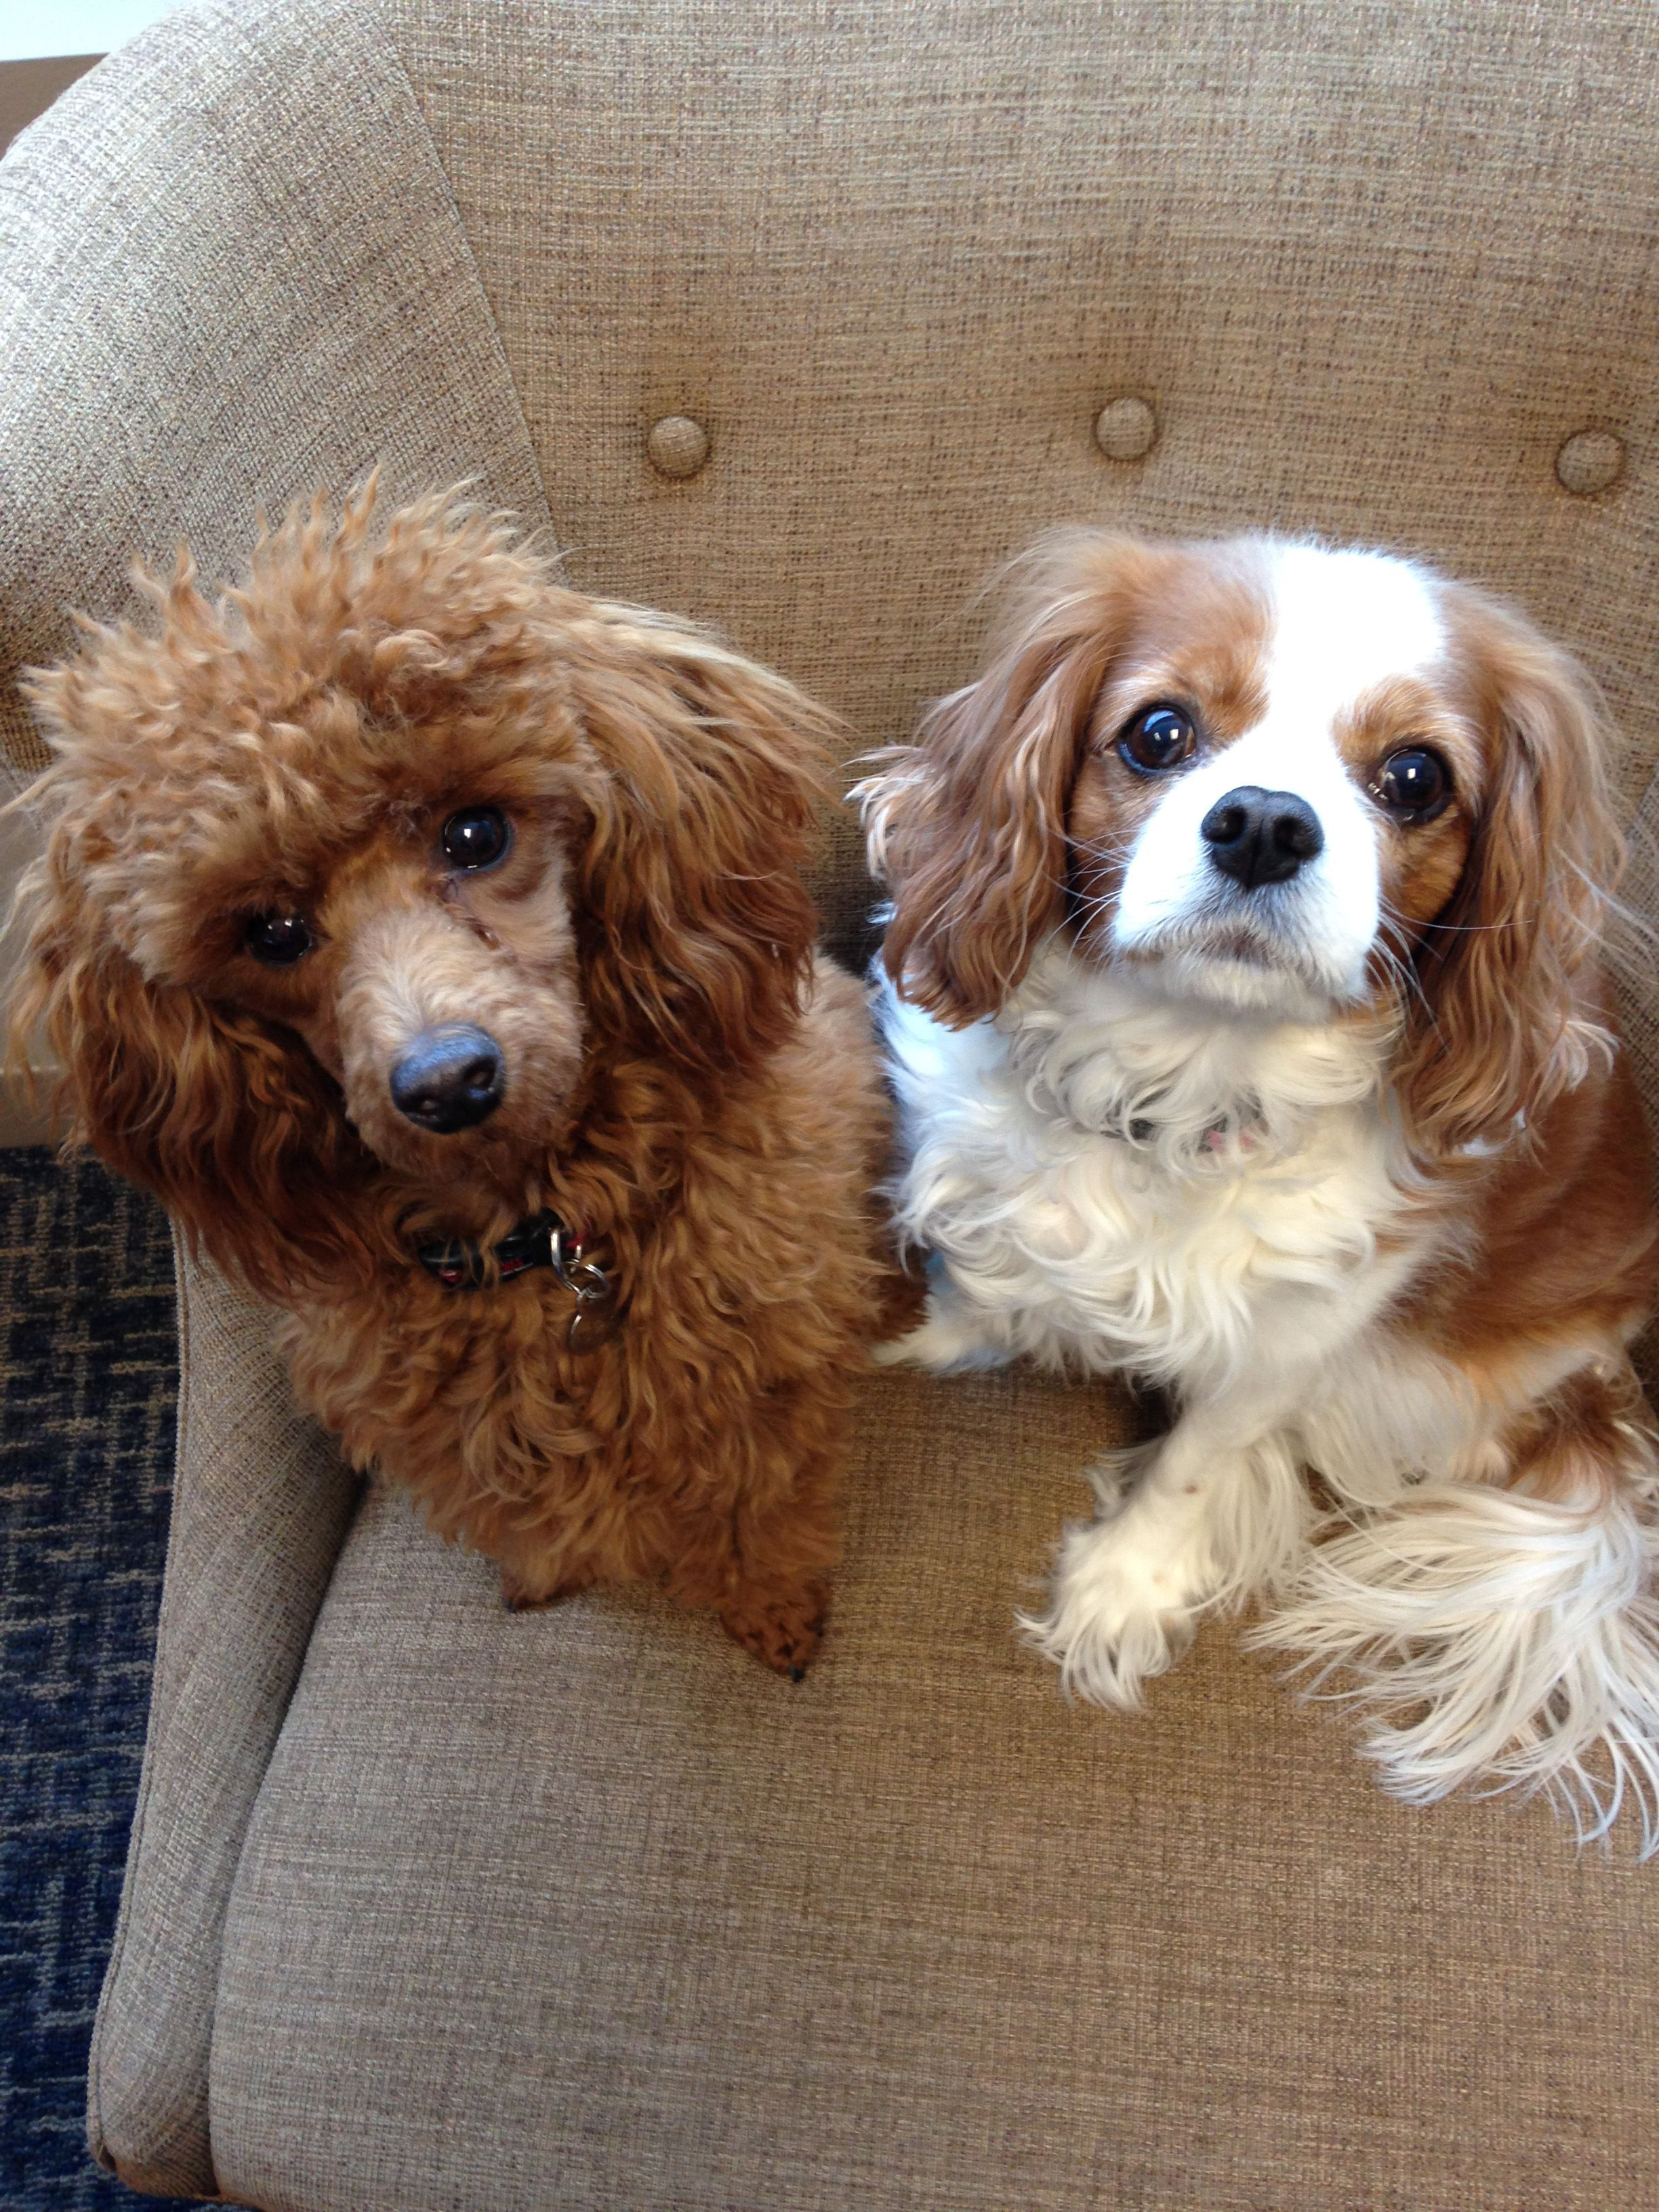 Leo The Red Miniature Poodle And Izzy The Cavalier King Charles Spaniel Poodle Puppy Cute Animal Pictures Cute Animals